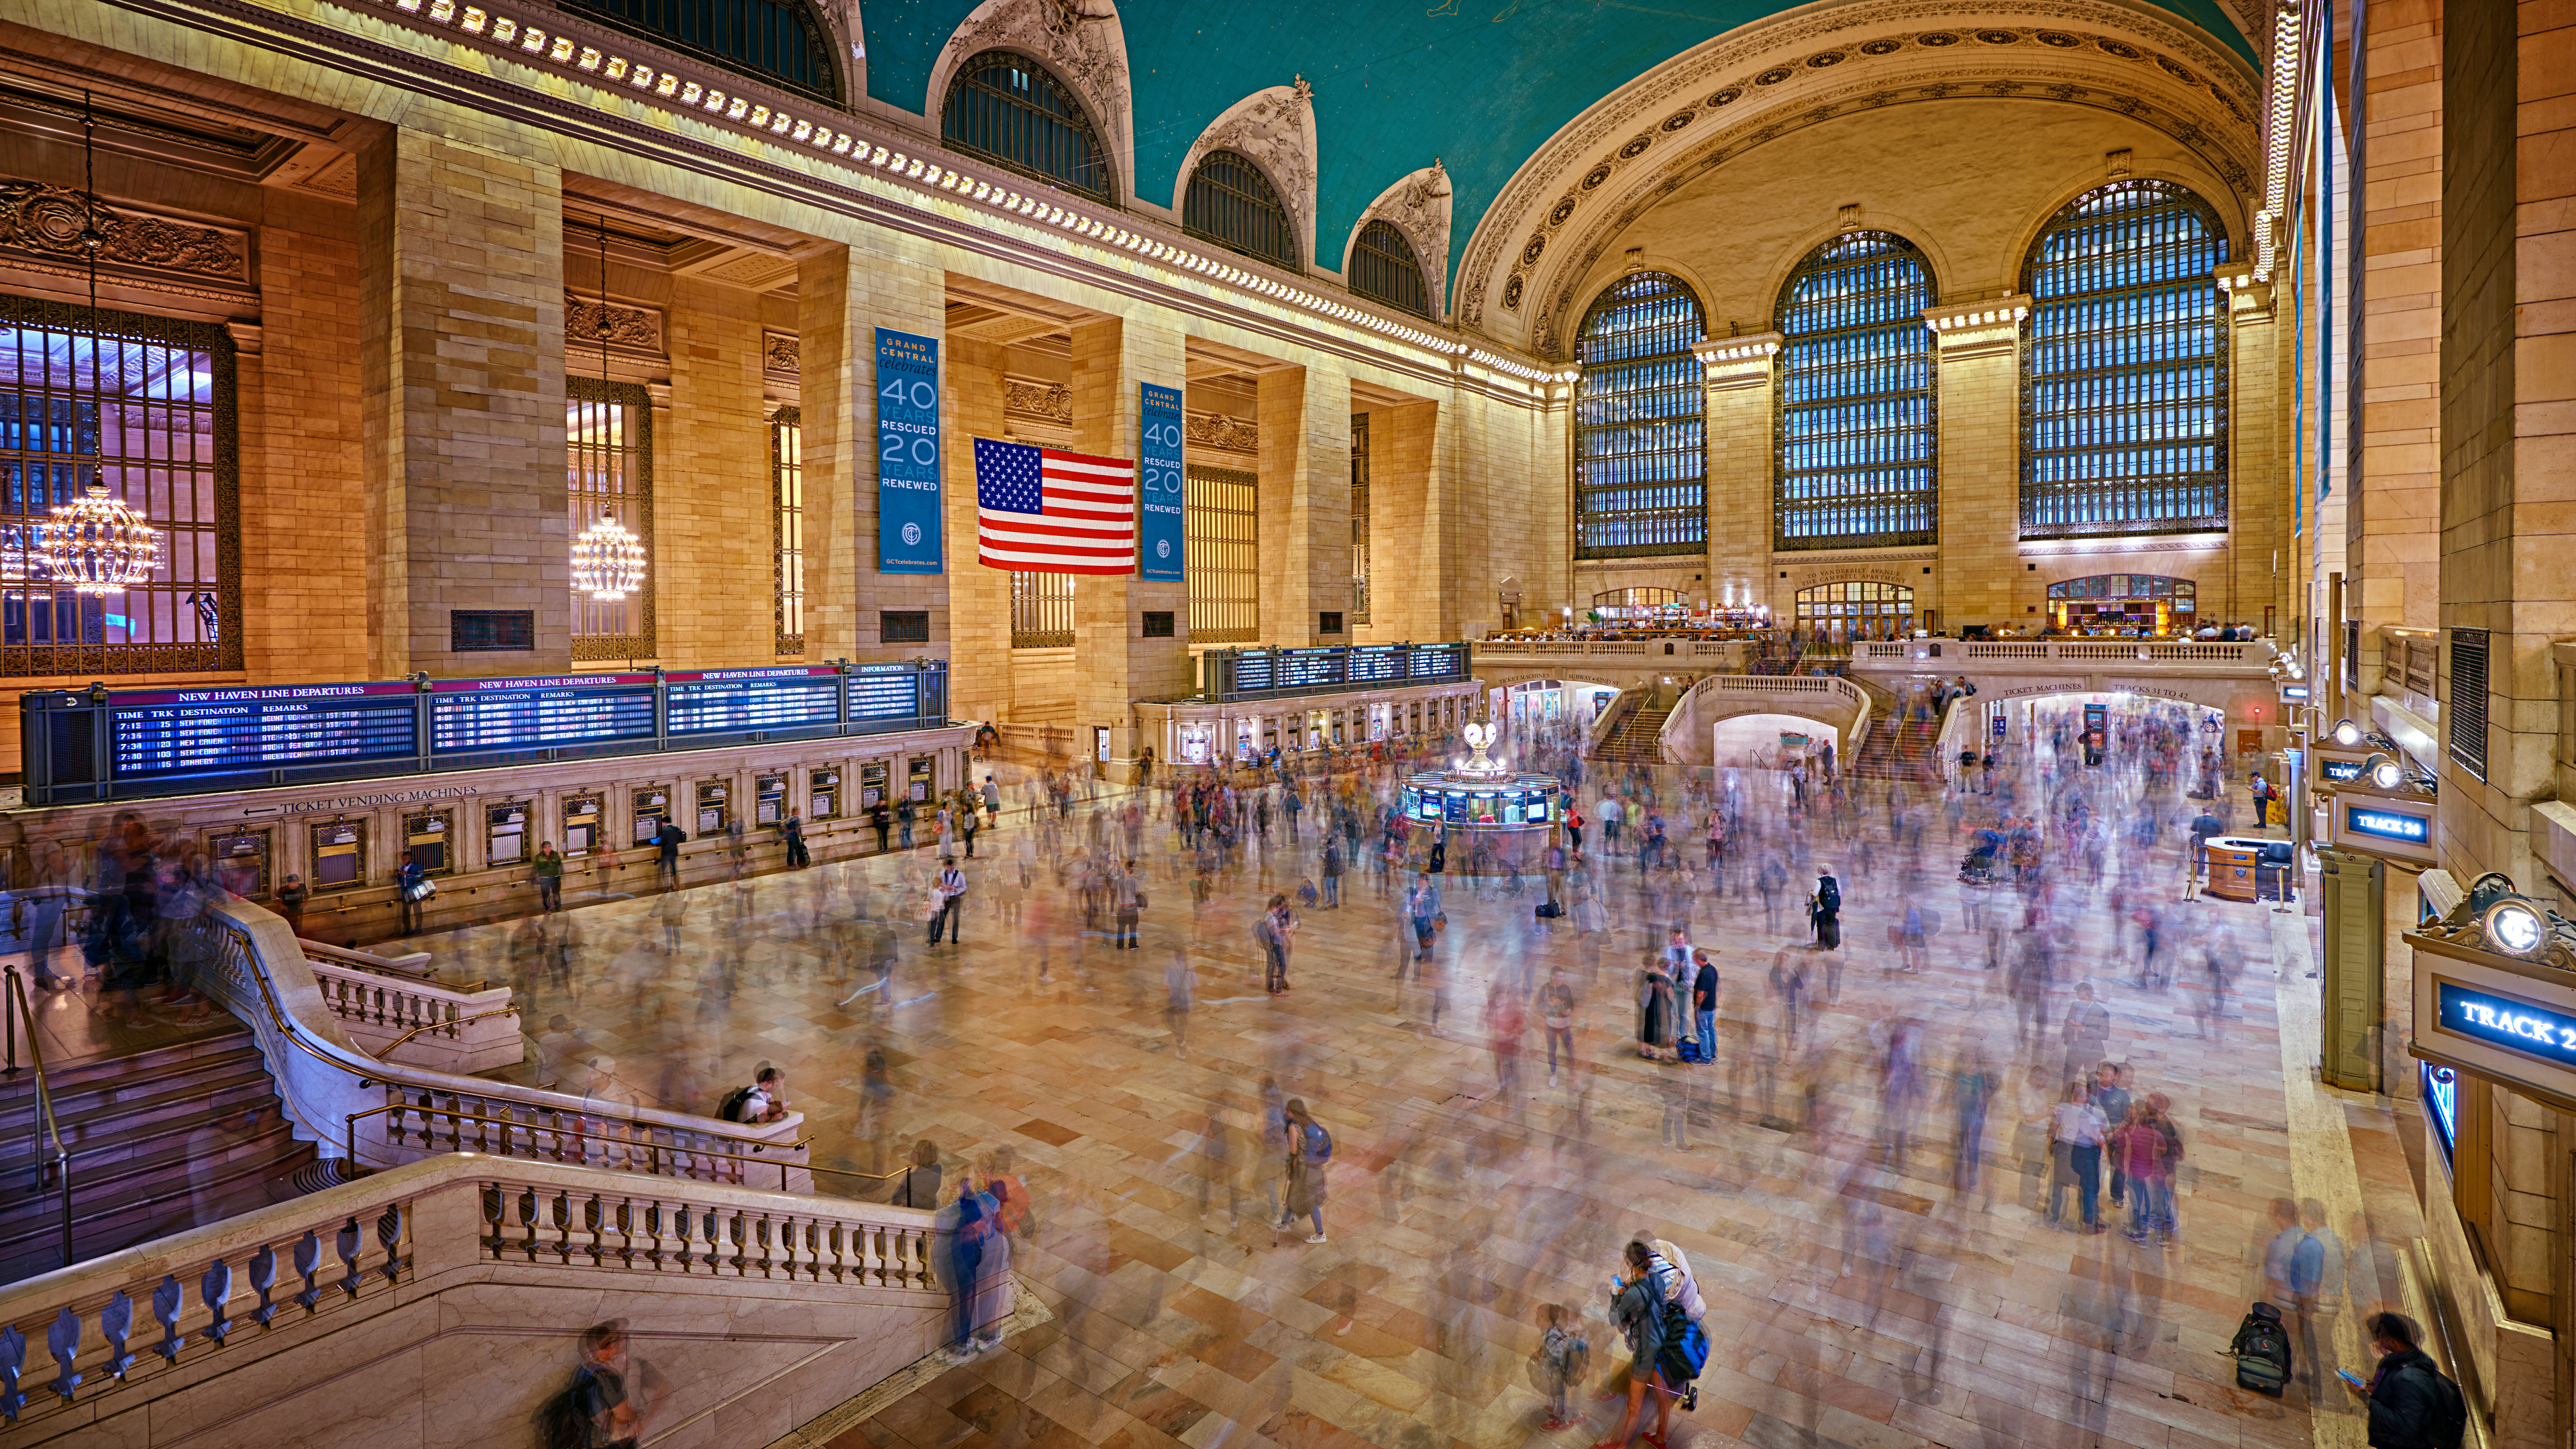 Grand Central Station. New York